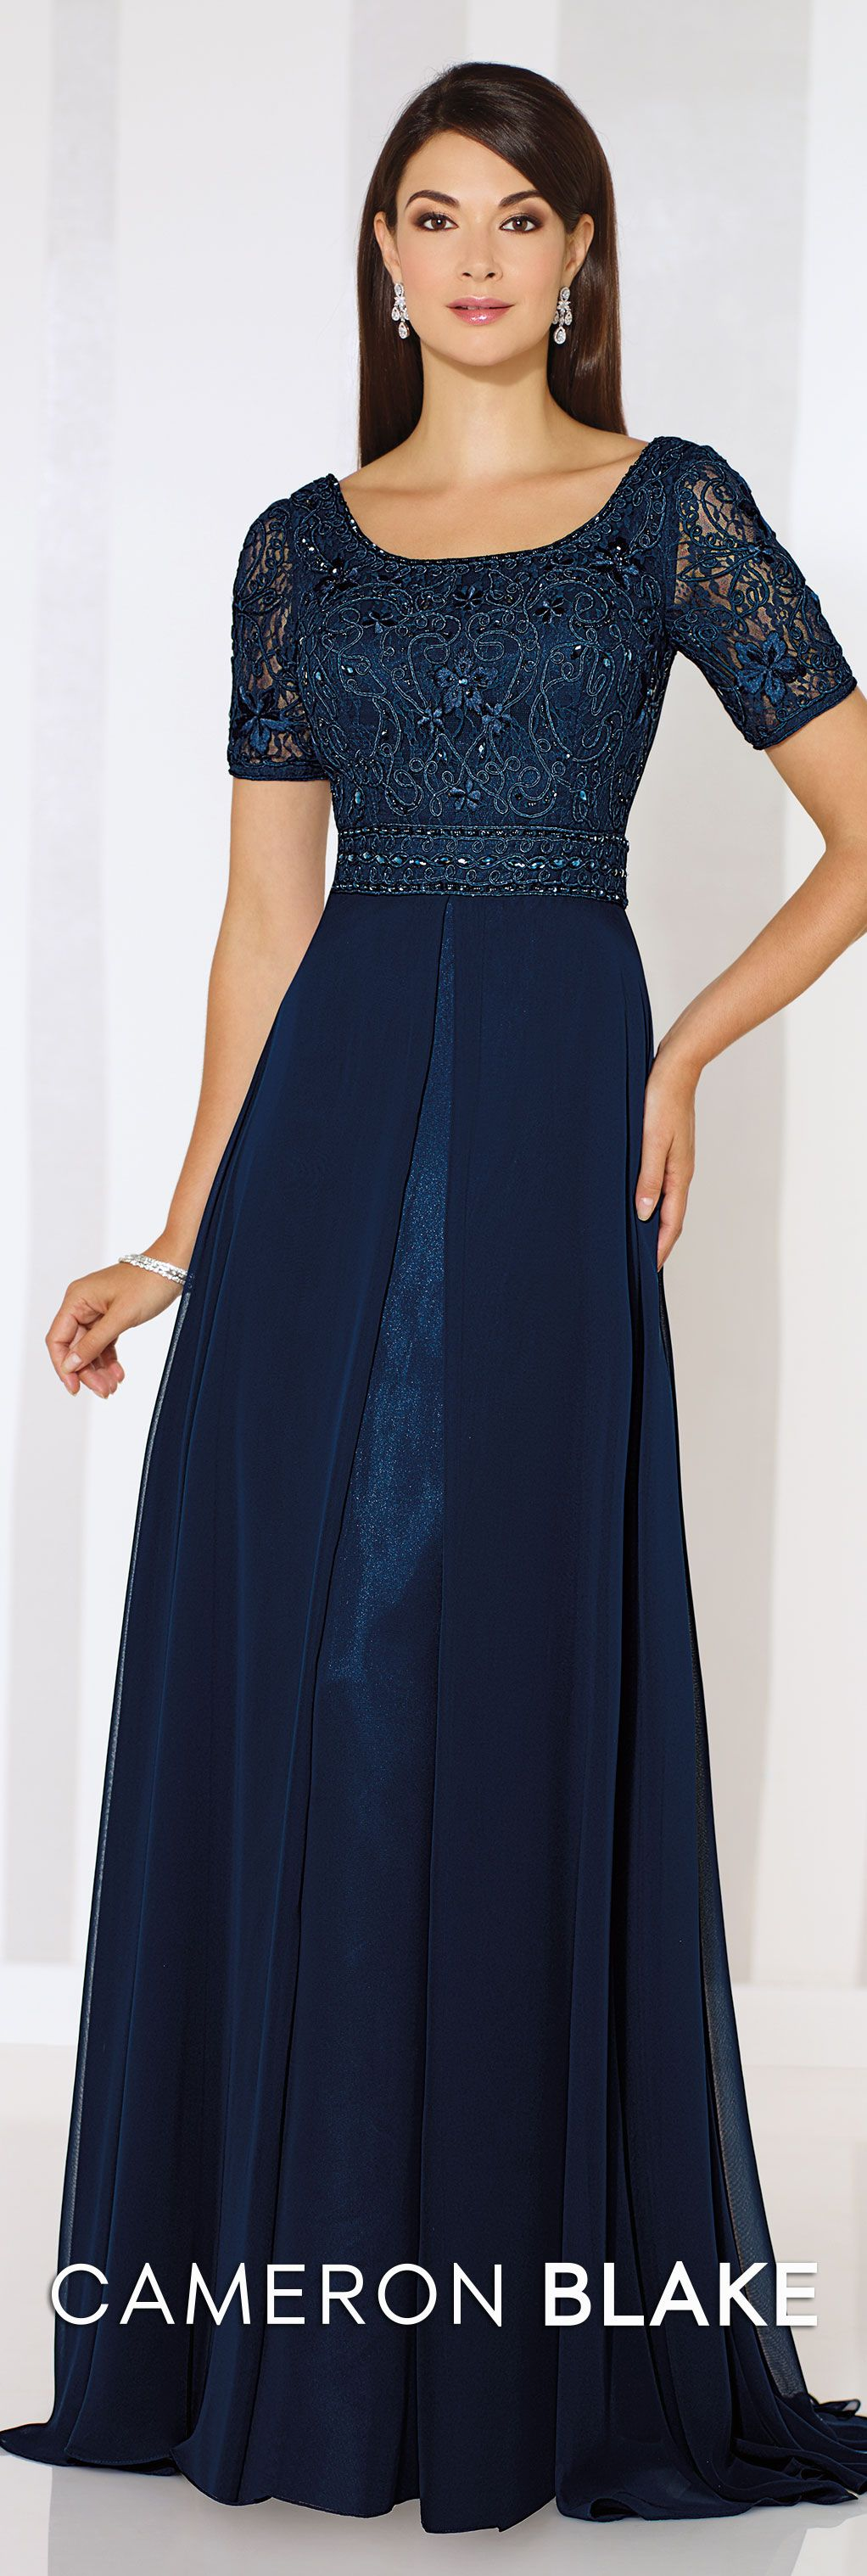 Mother dresses for fall wedding  Cameron Blake Mother of the Bride Dresses u Dress Suits